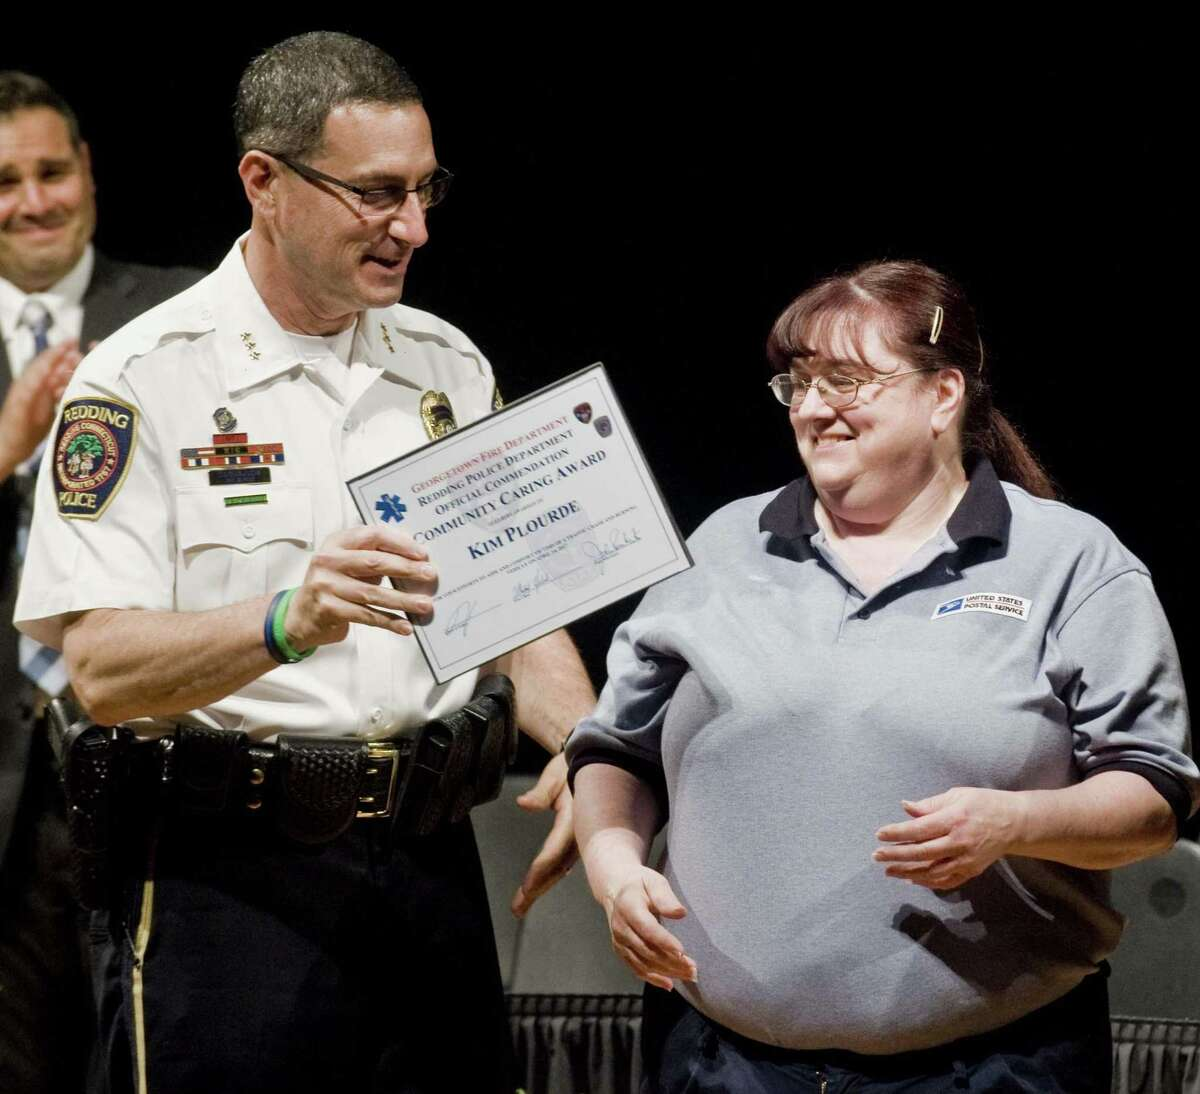 Redding Police Chief Douglas Fuchs hands Kim Plourde a Community Caring Award during the Community Recognition Ceremony at Joel Barlow High School honoring police officers, firefighters, EMS first responders as well as civilians who helped the teenagers during the fiery crash in April. Wednesday, May 31, 2017